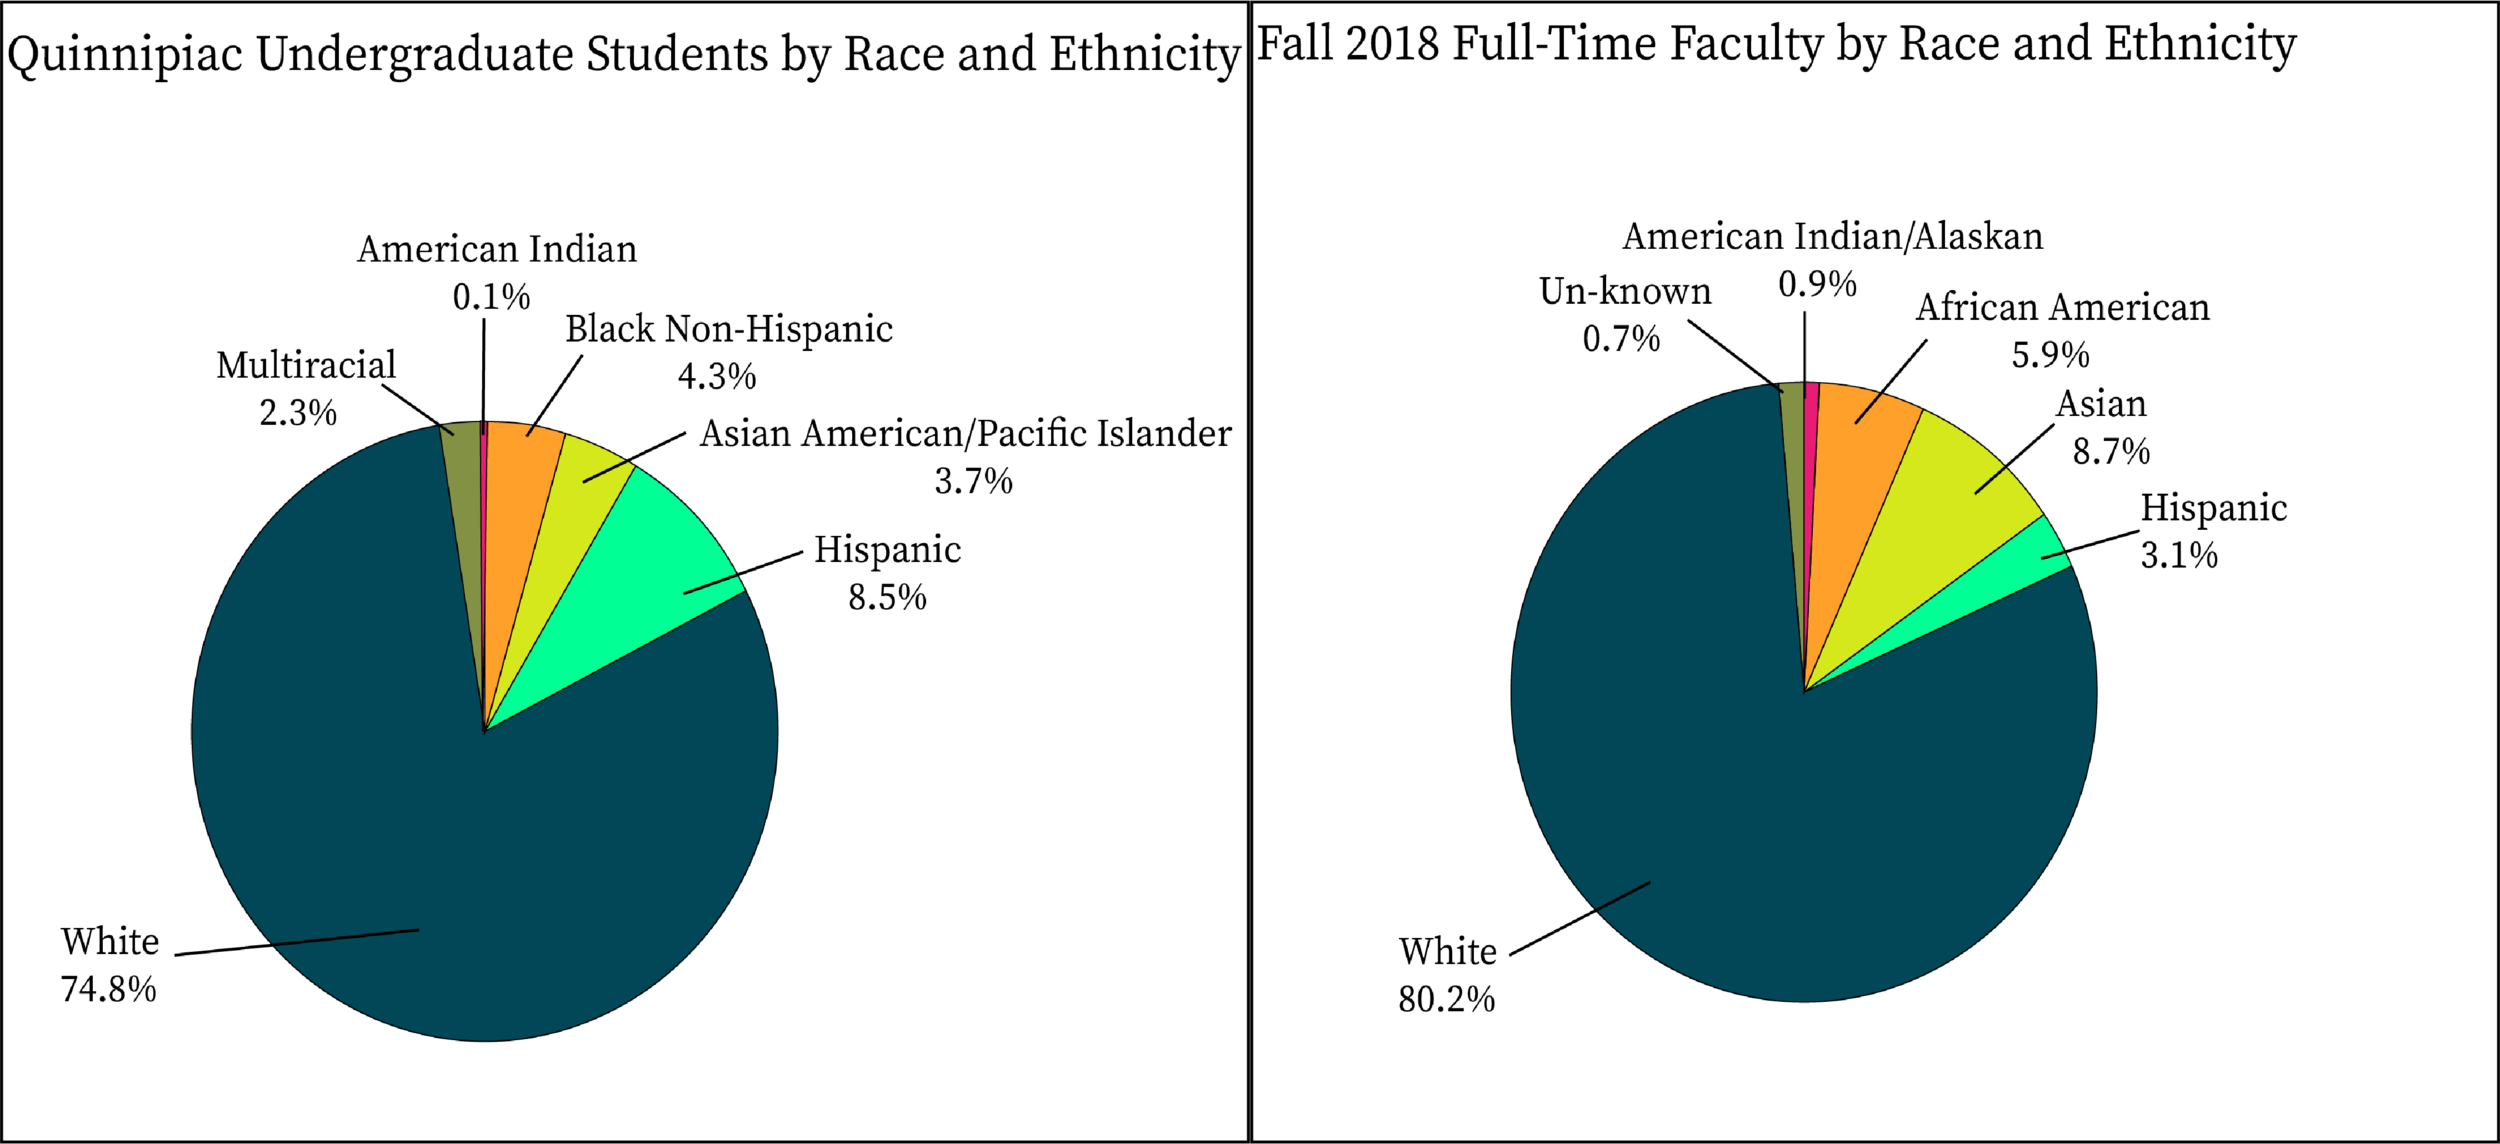 Pie charts outlining the racial demographics of the undergraduate population and fall 2018 full-time faculty at Quinnipiac.